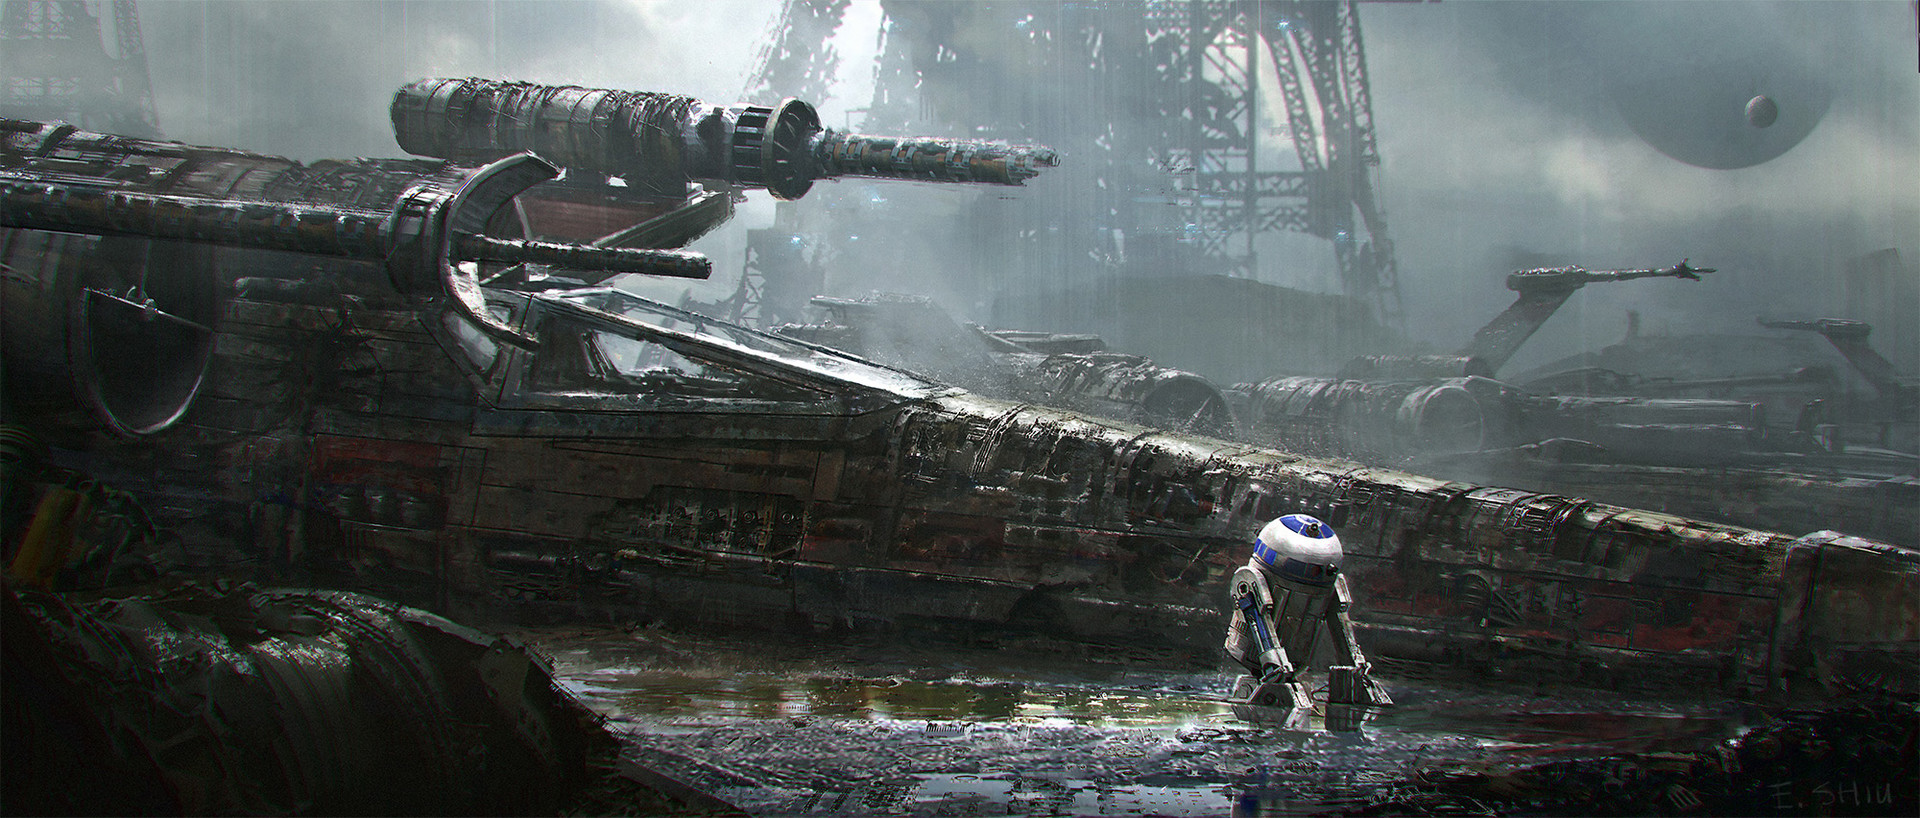 Star Wars Ships Concept Art